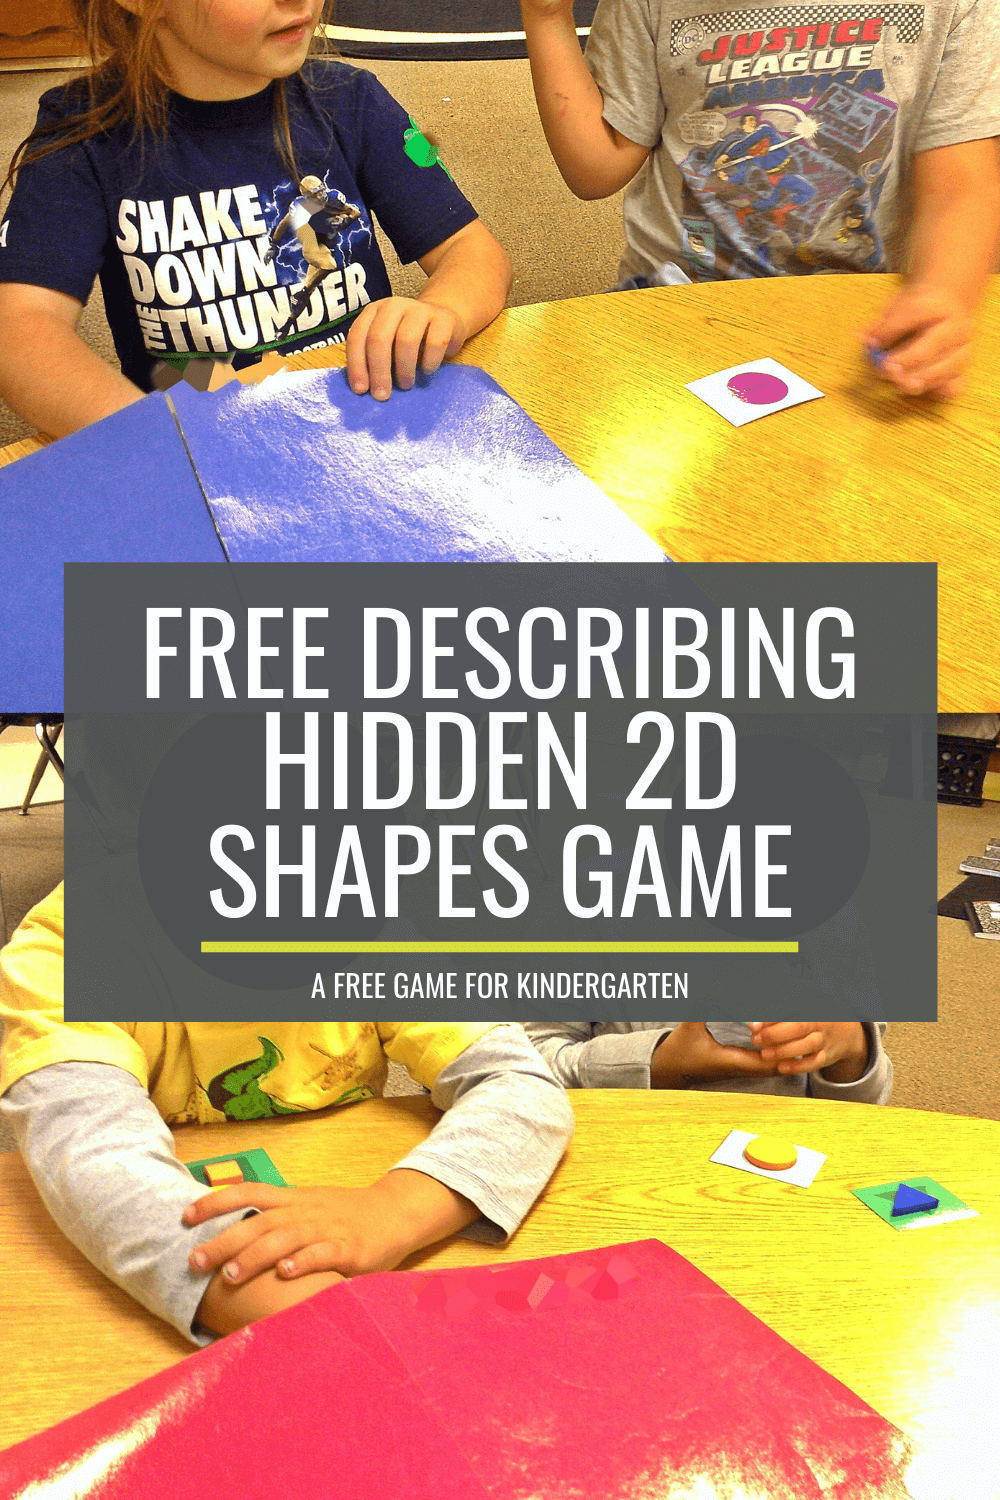 Free Describing Hidden 2D Shapes Game for Kindergarten